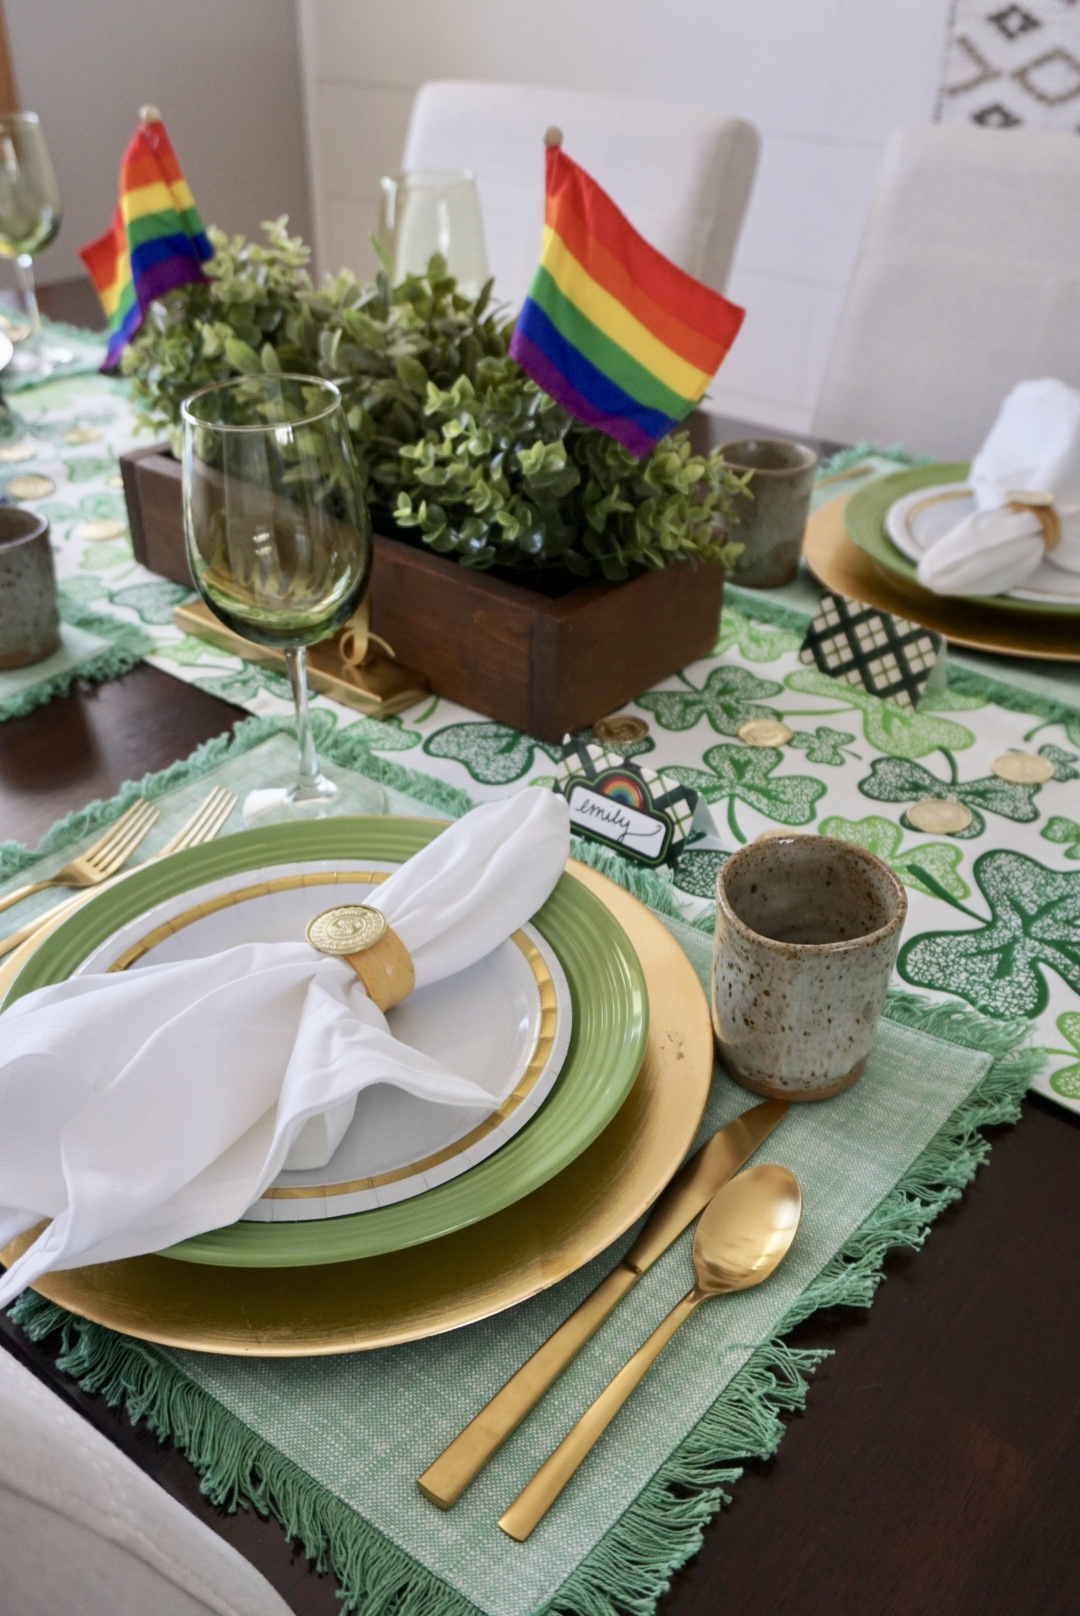 Tablescape Treasure Diy St Patrick S Day Napkin Rings Tablesetting Tips Legally Crafty Blog